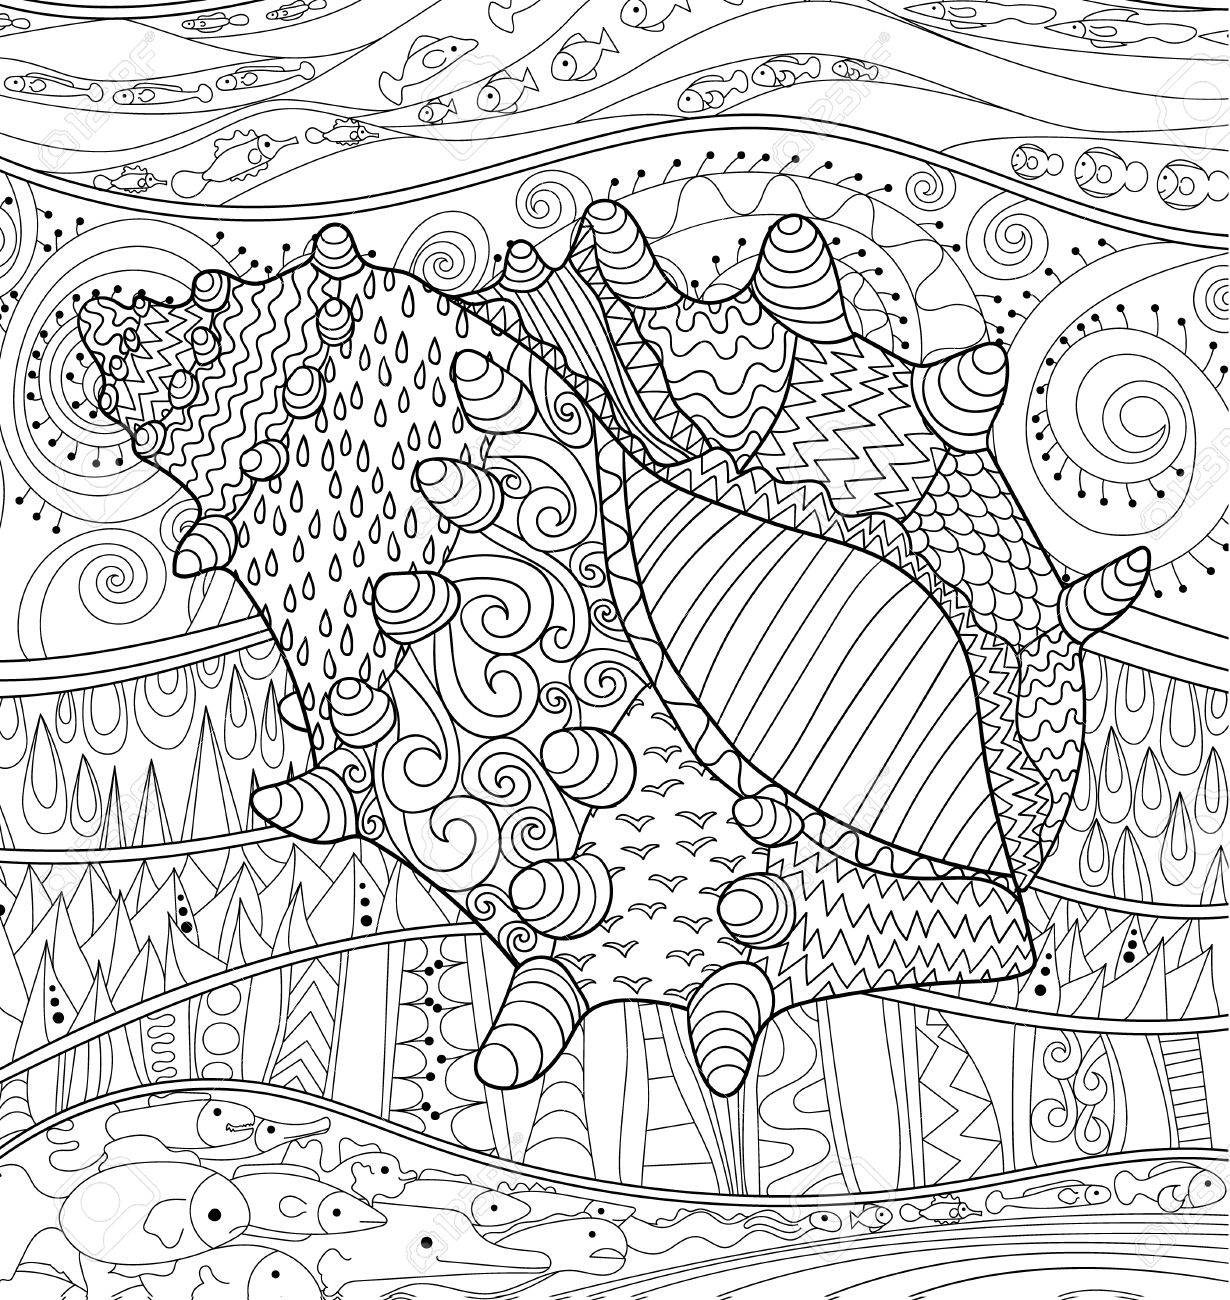 seashell with high details antistress coloring page black